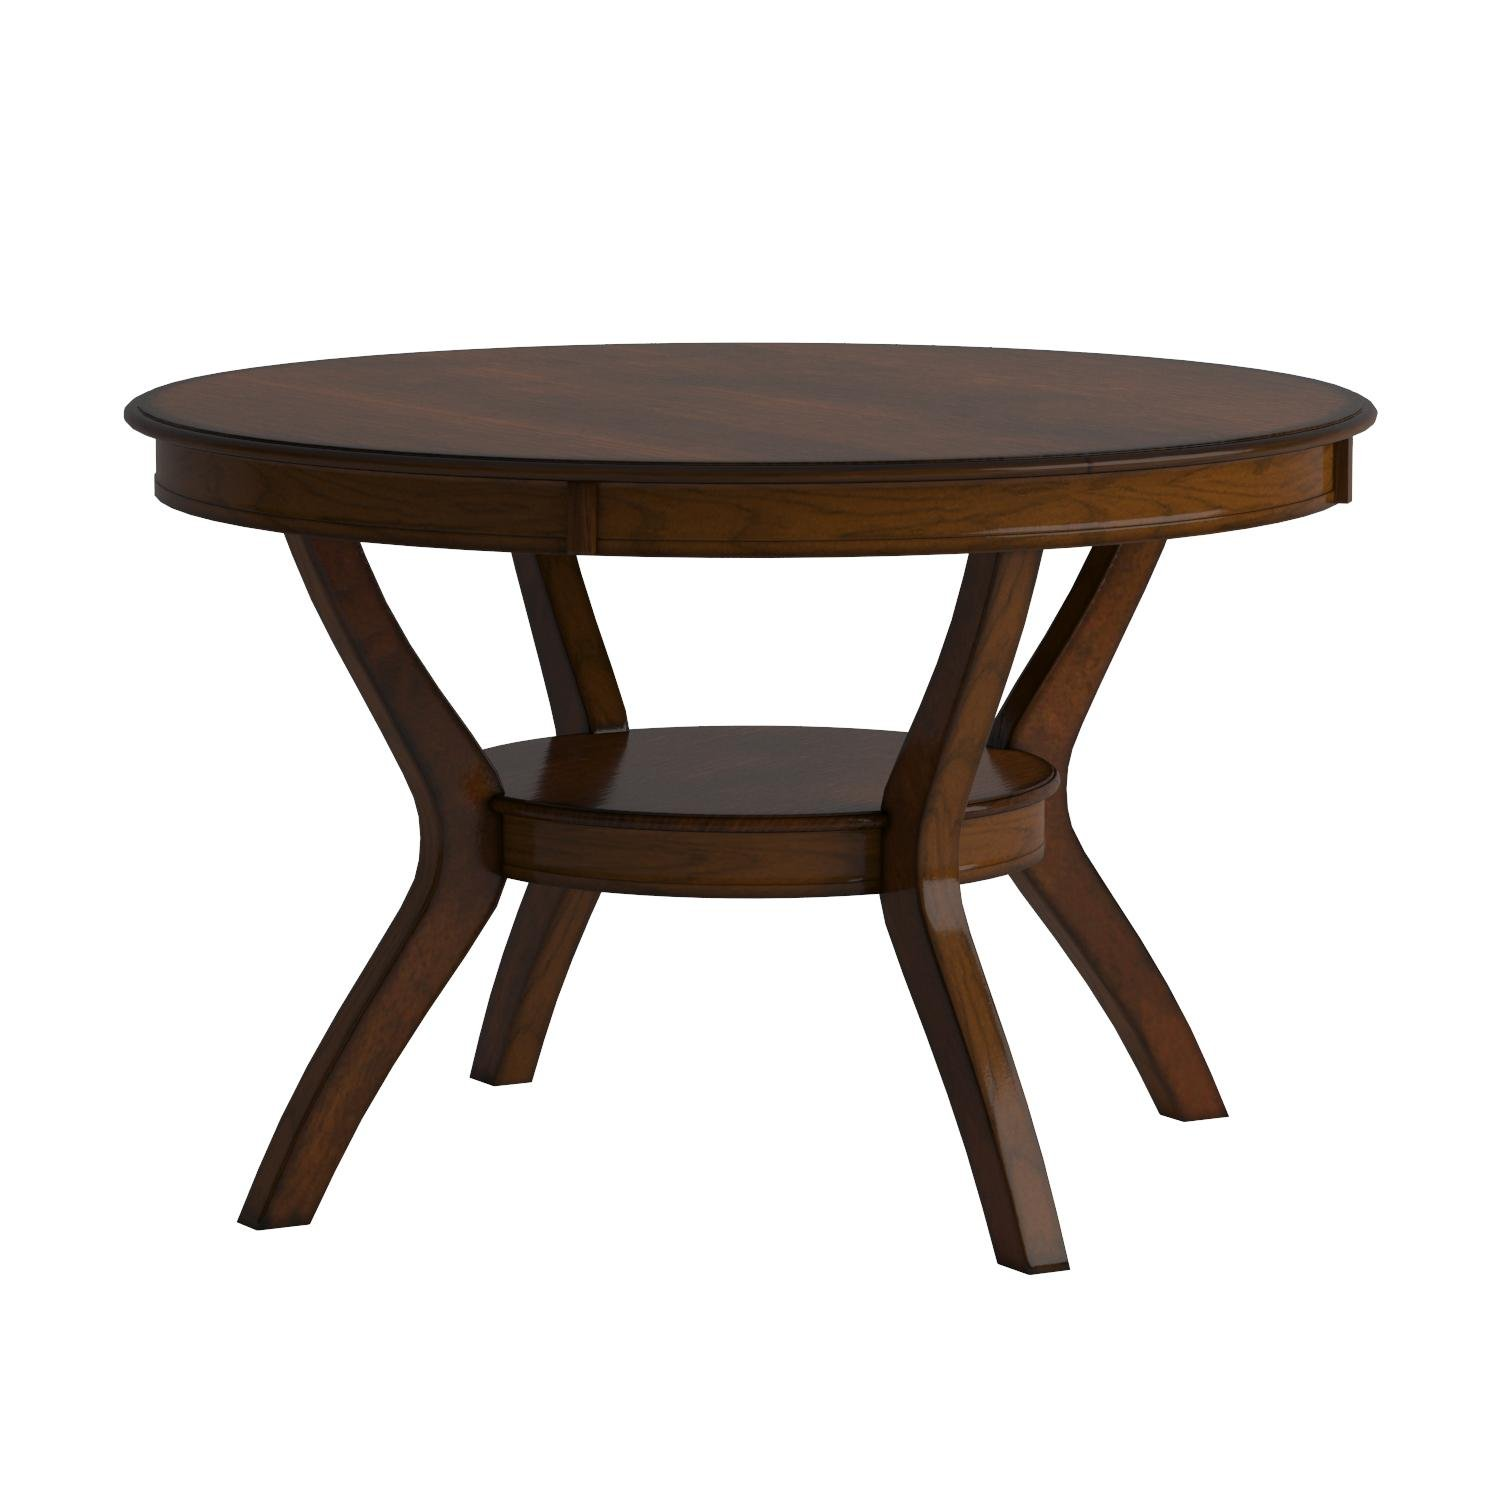 Coaster Home Furnishings  Nelms Classic Modern Transitional Round Dining Table with Storage Shelf - Deep Brown